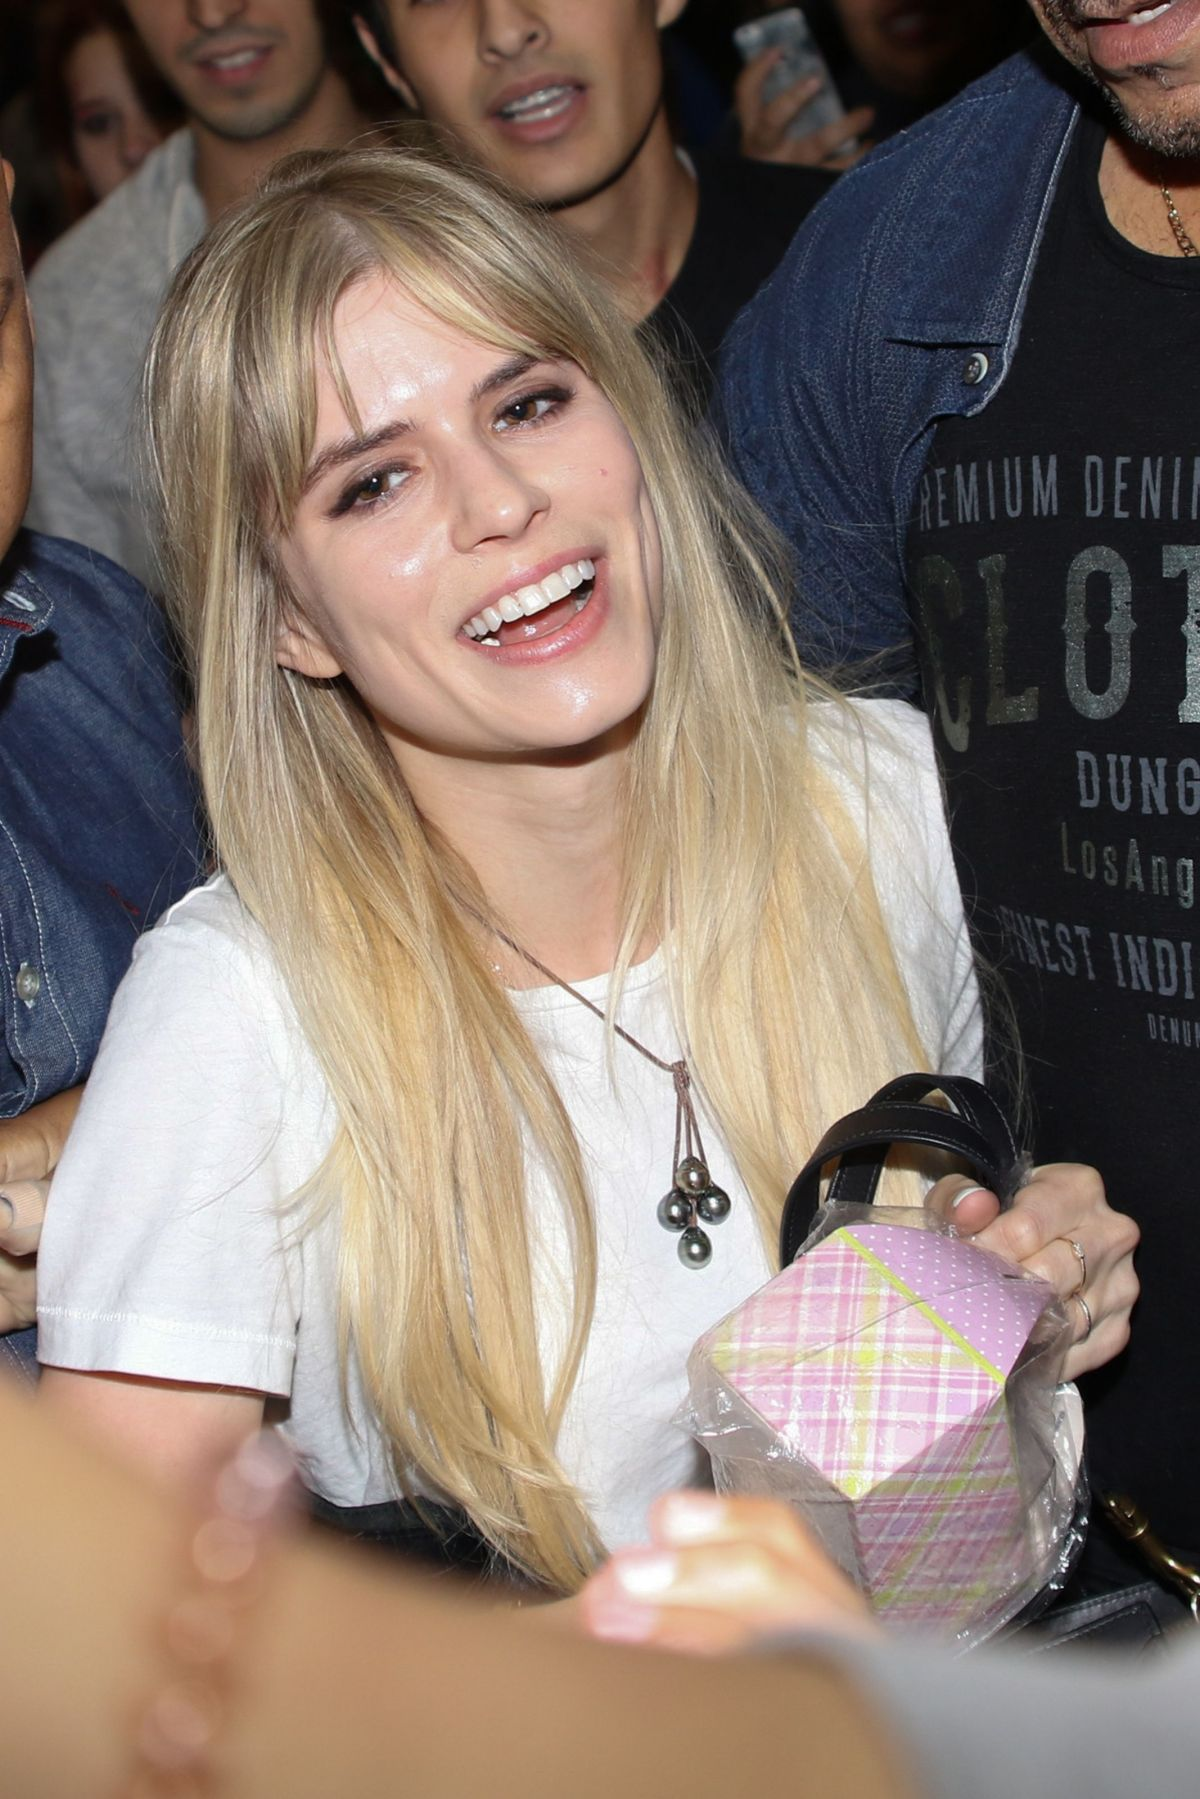 Paparazzi Carlson Young nudes (37 photo), Instagram